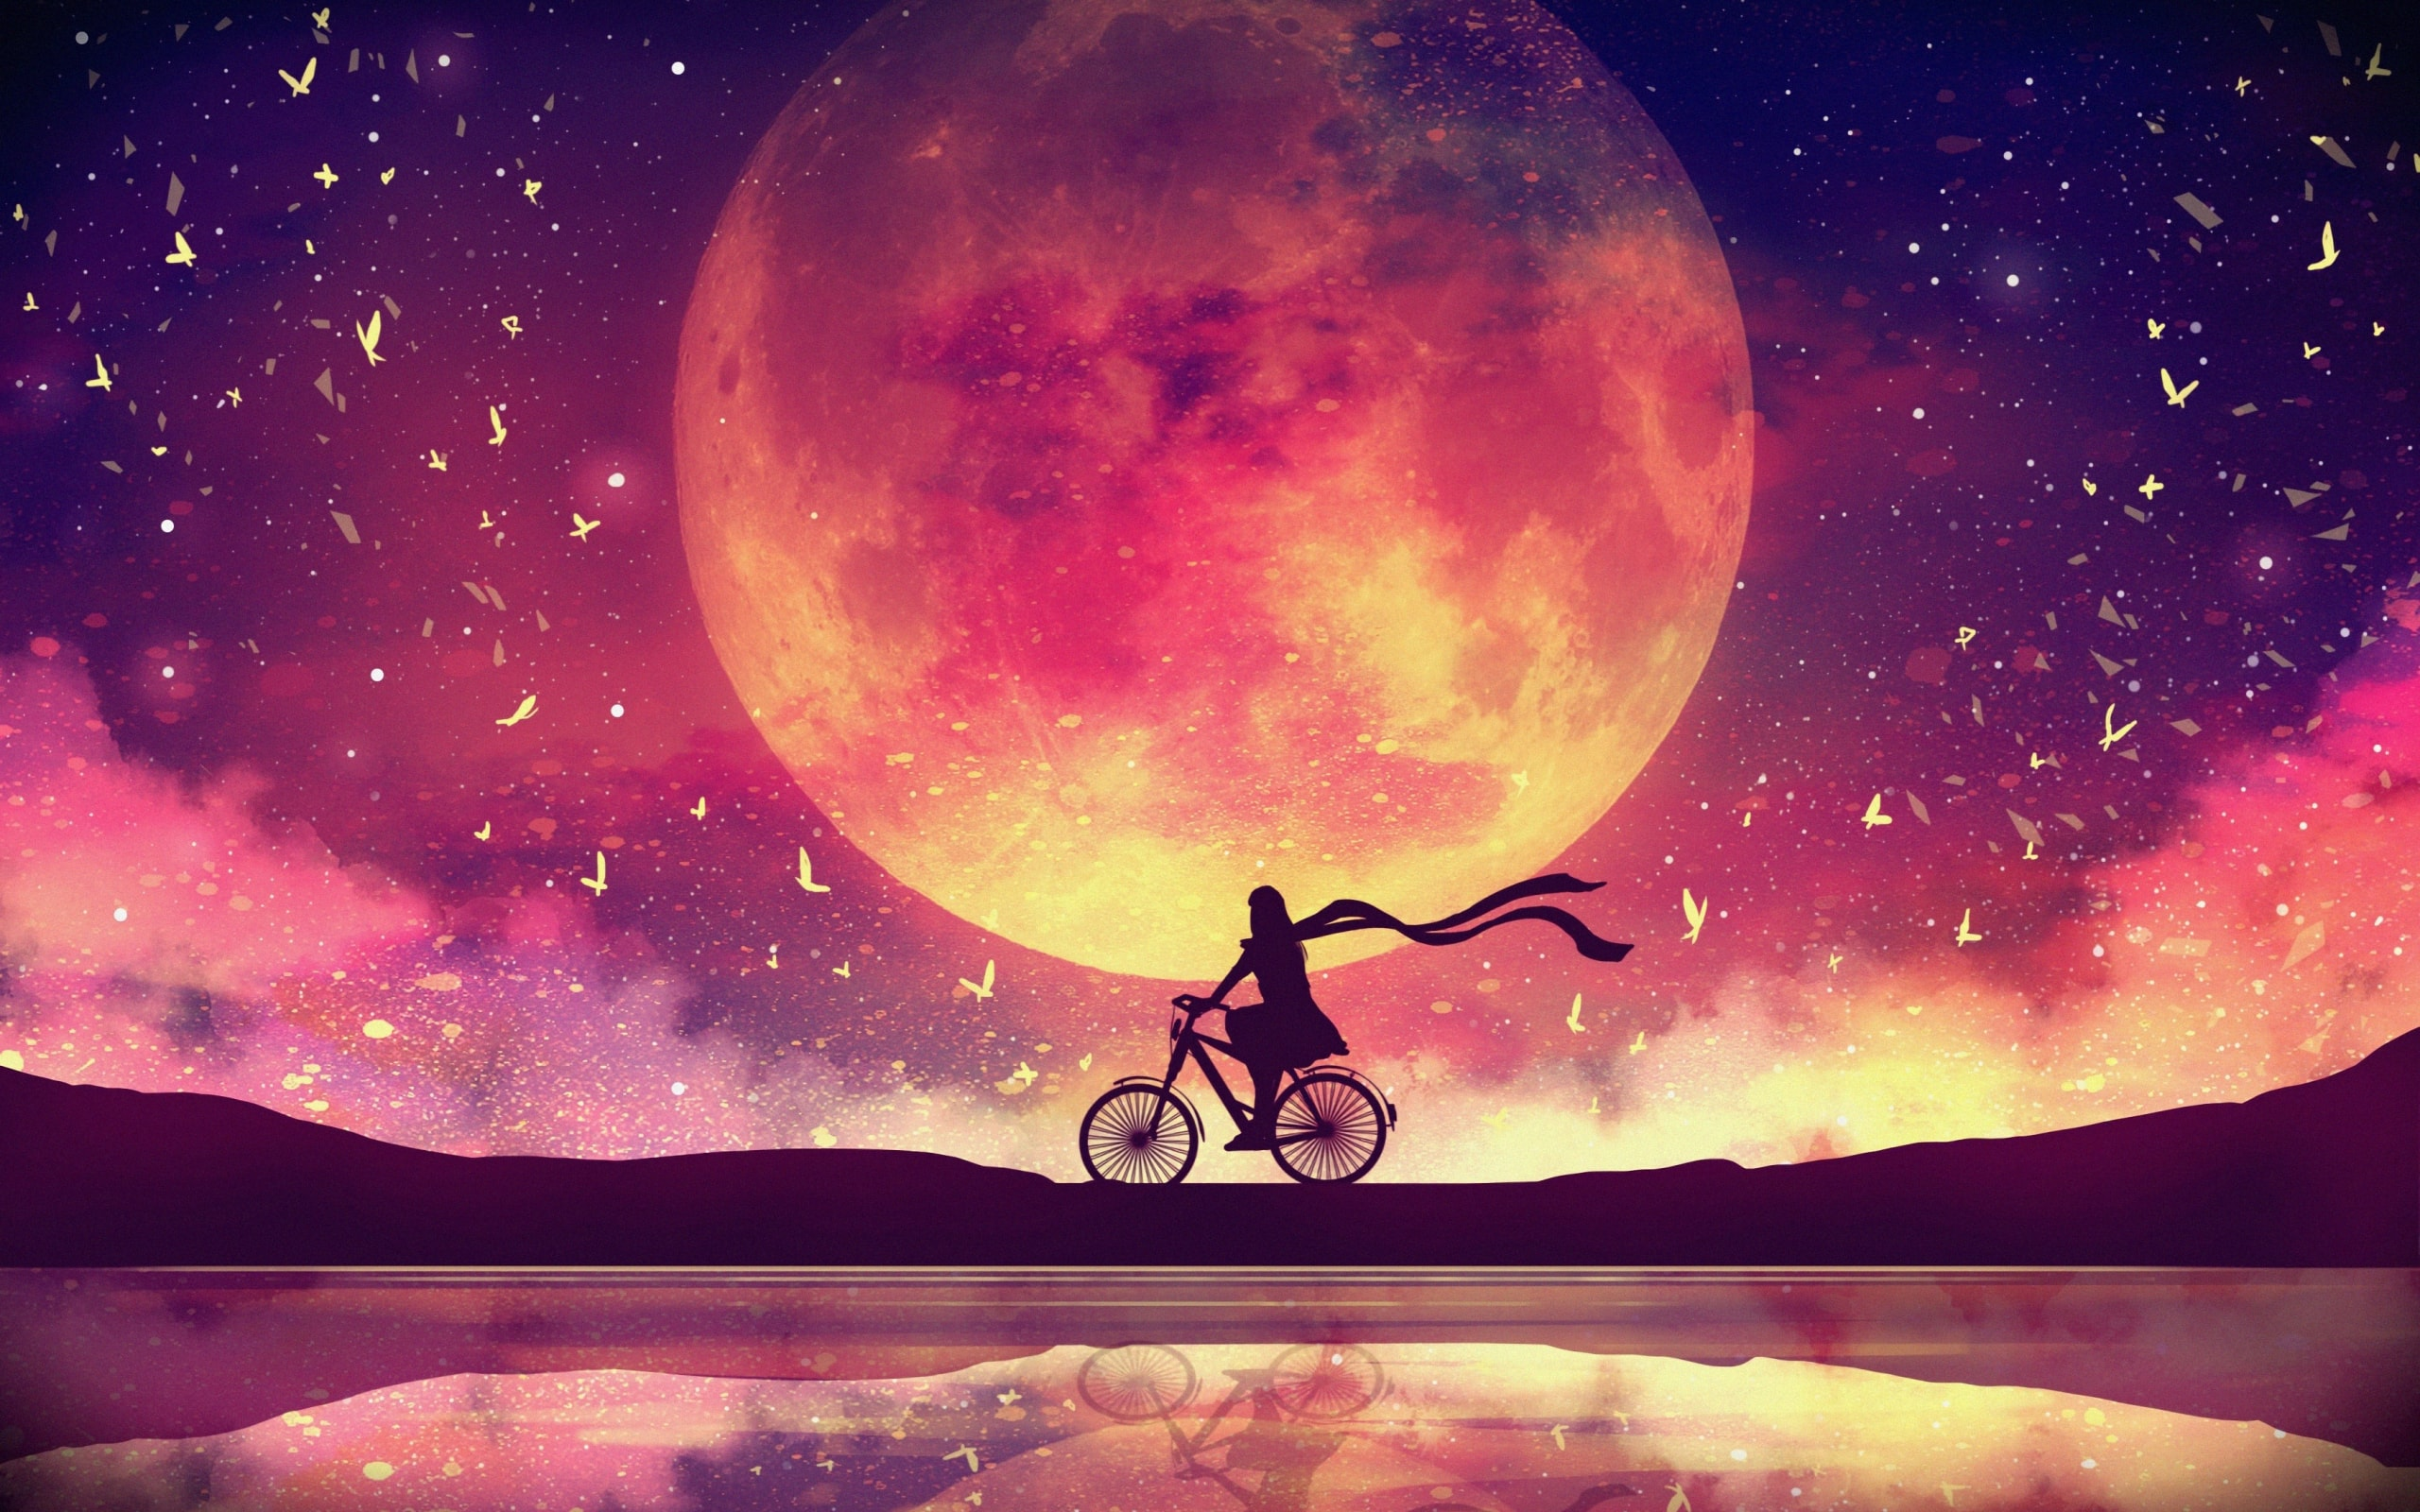 Wallpaper Of Artistic Digital Art Moon Background Hd Image